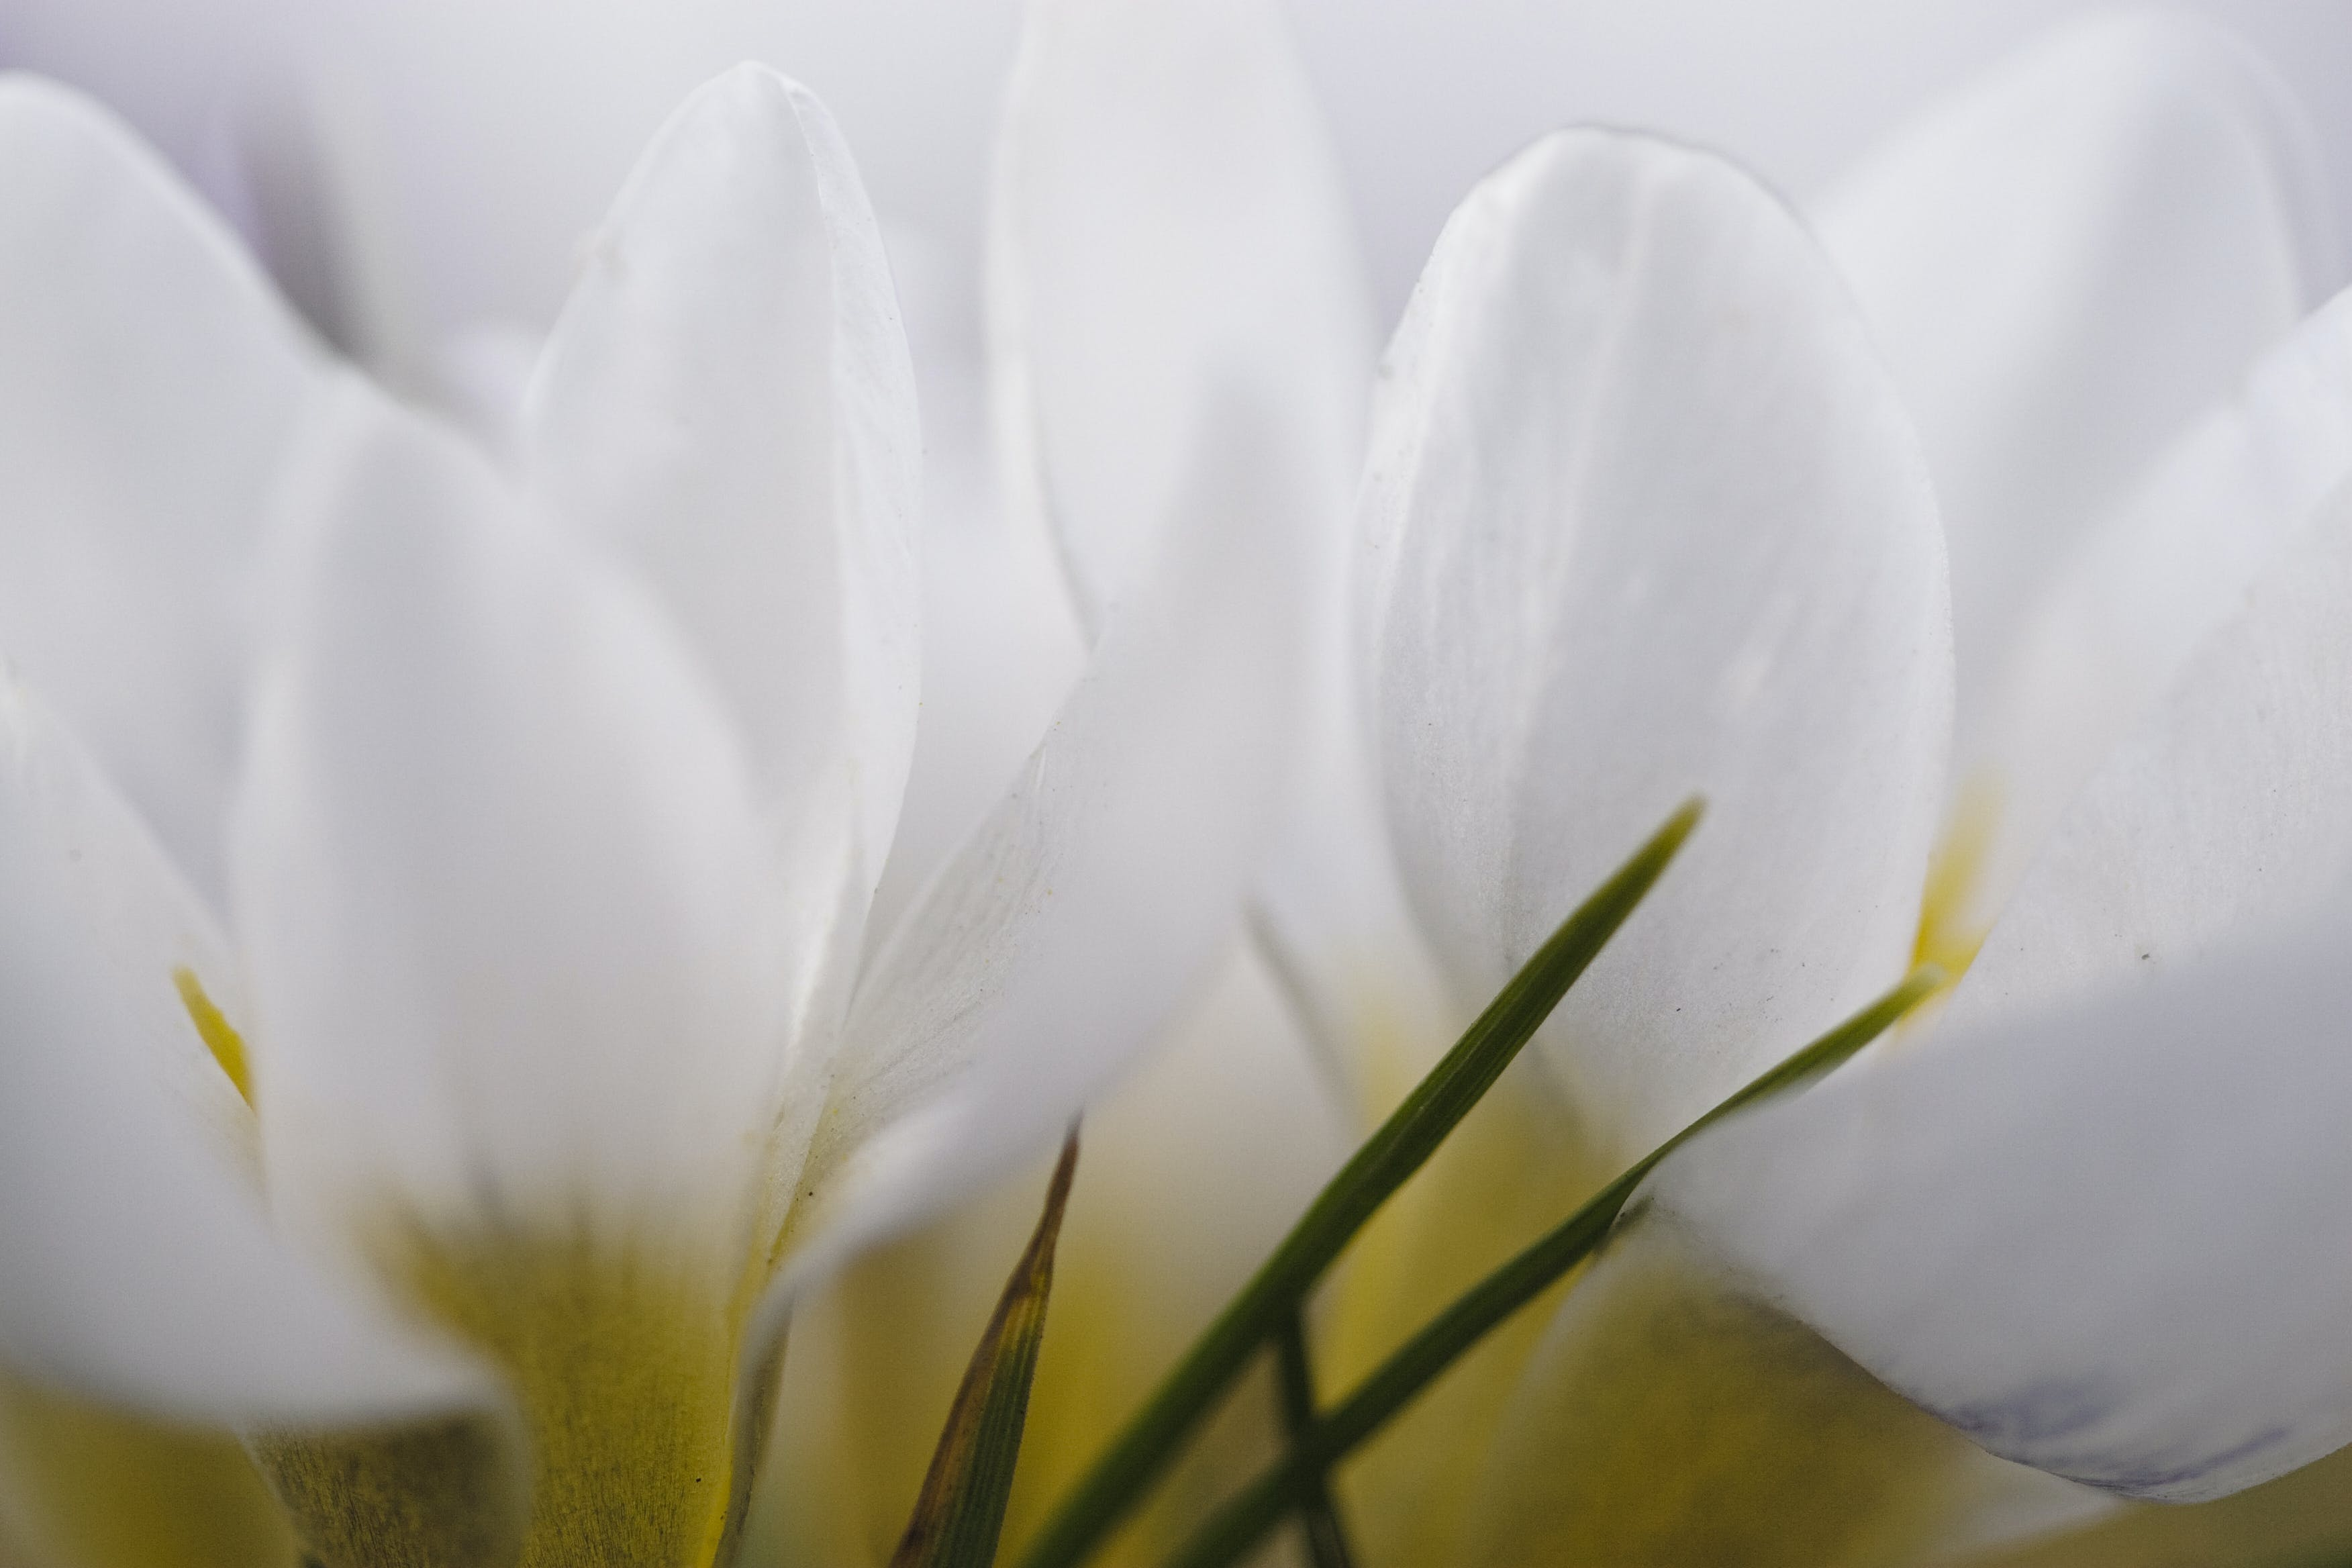 Free stock photo of flowers, white, close-up, white flowers